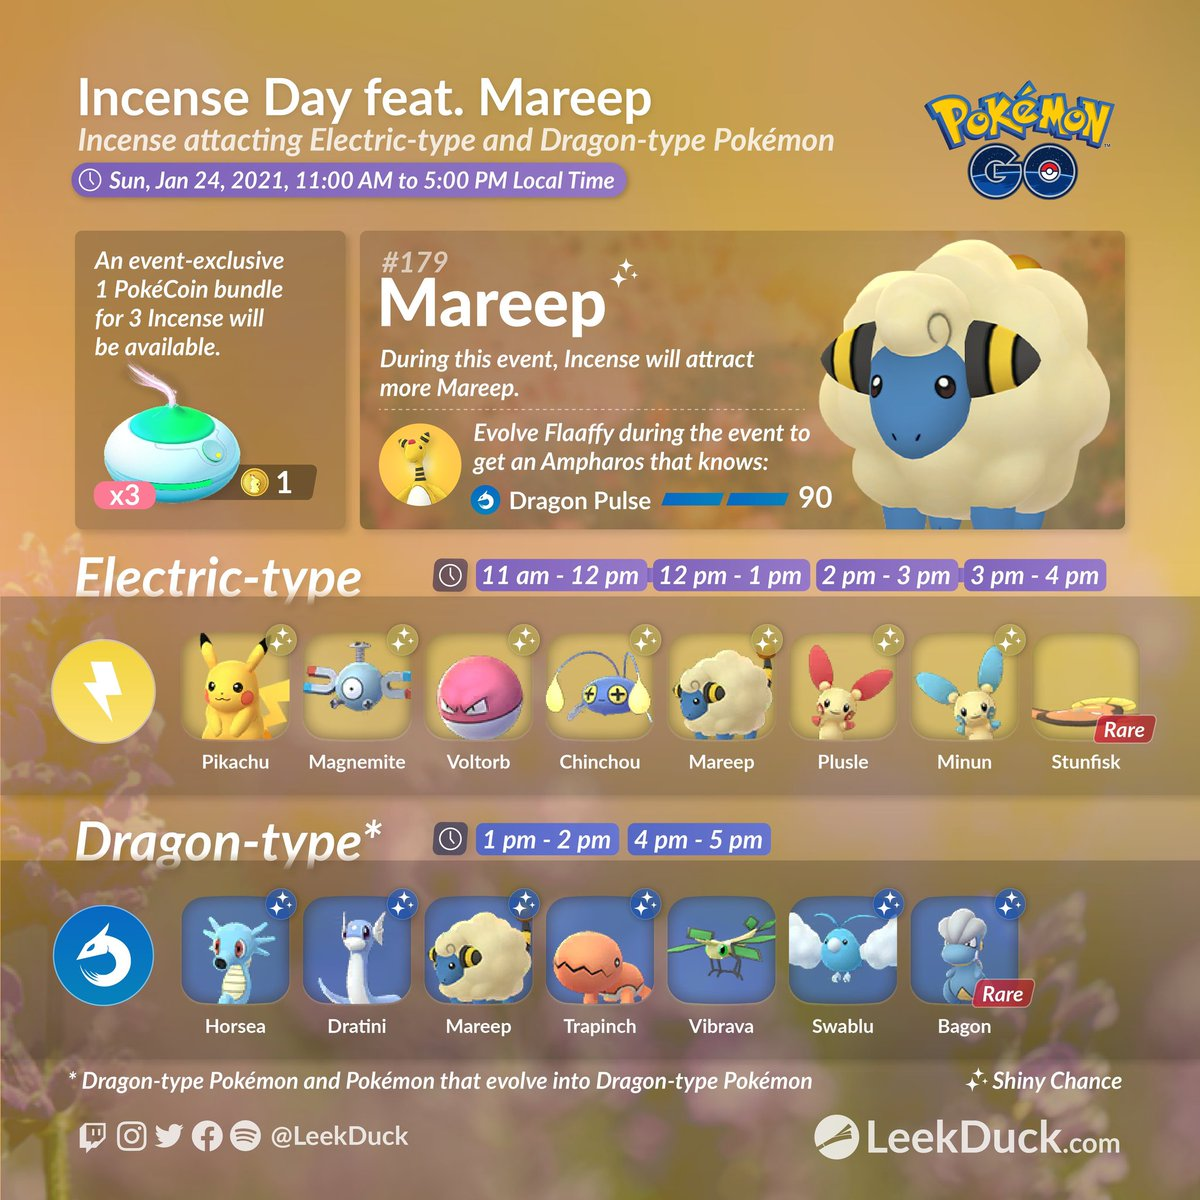 Ready for Tomorrow? Let's go Bearians! Tomorrow's Streams gonna be epic!  What Pokémon do you most desire on this list? Comment or GIF below <3  #PokemonGo #Mareep #Community #Electric #Dragon #lures #Johto